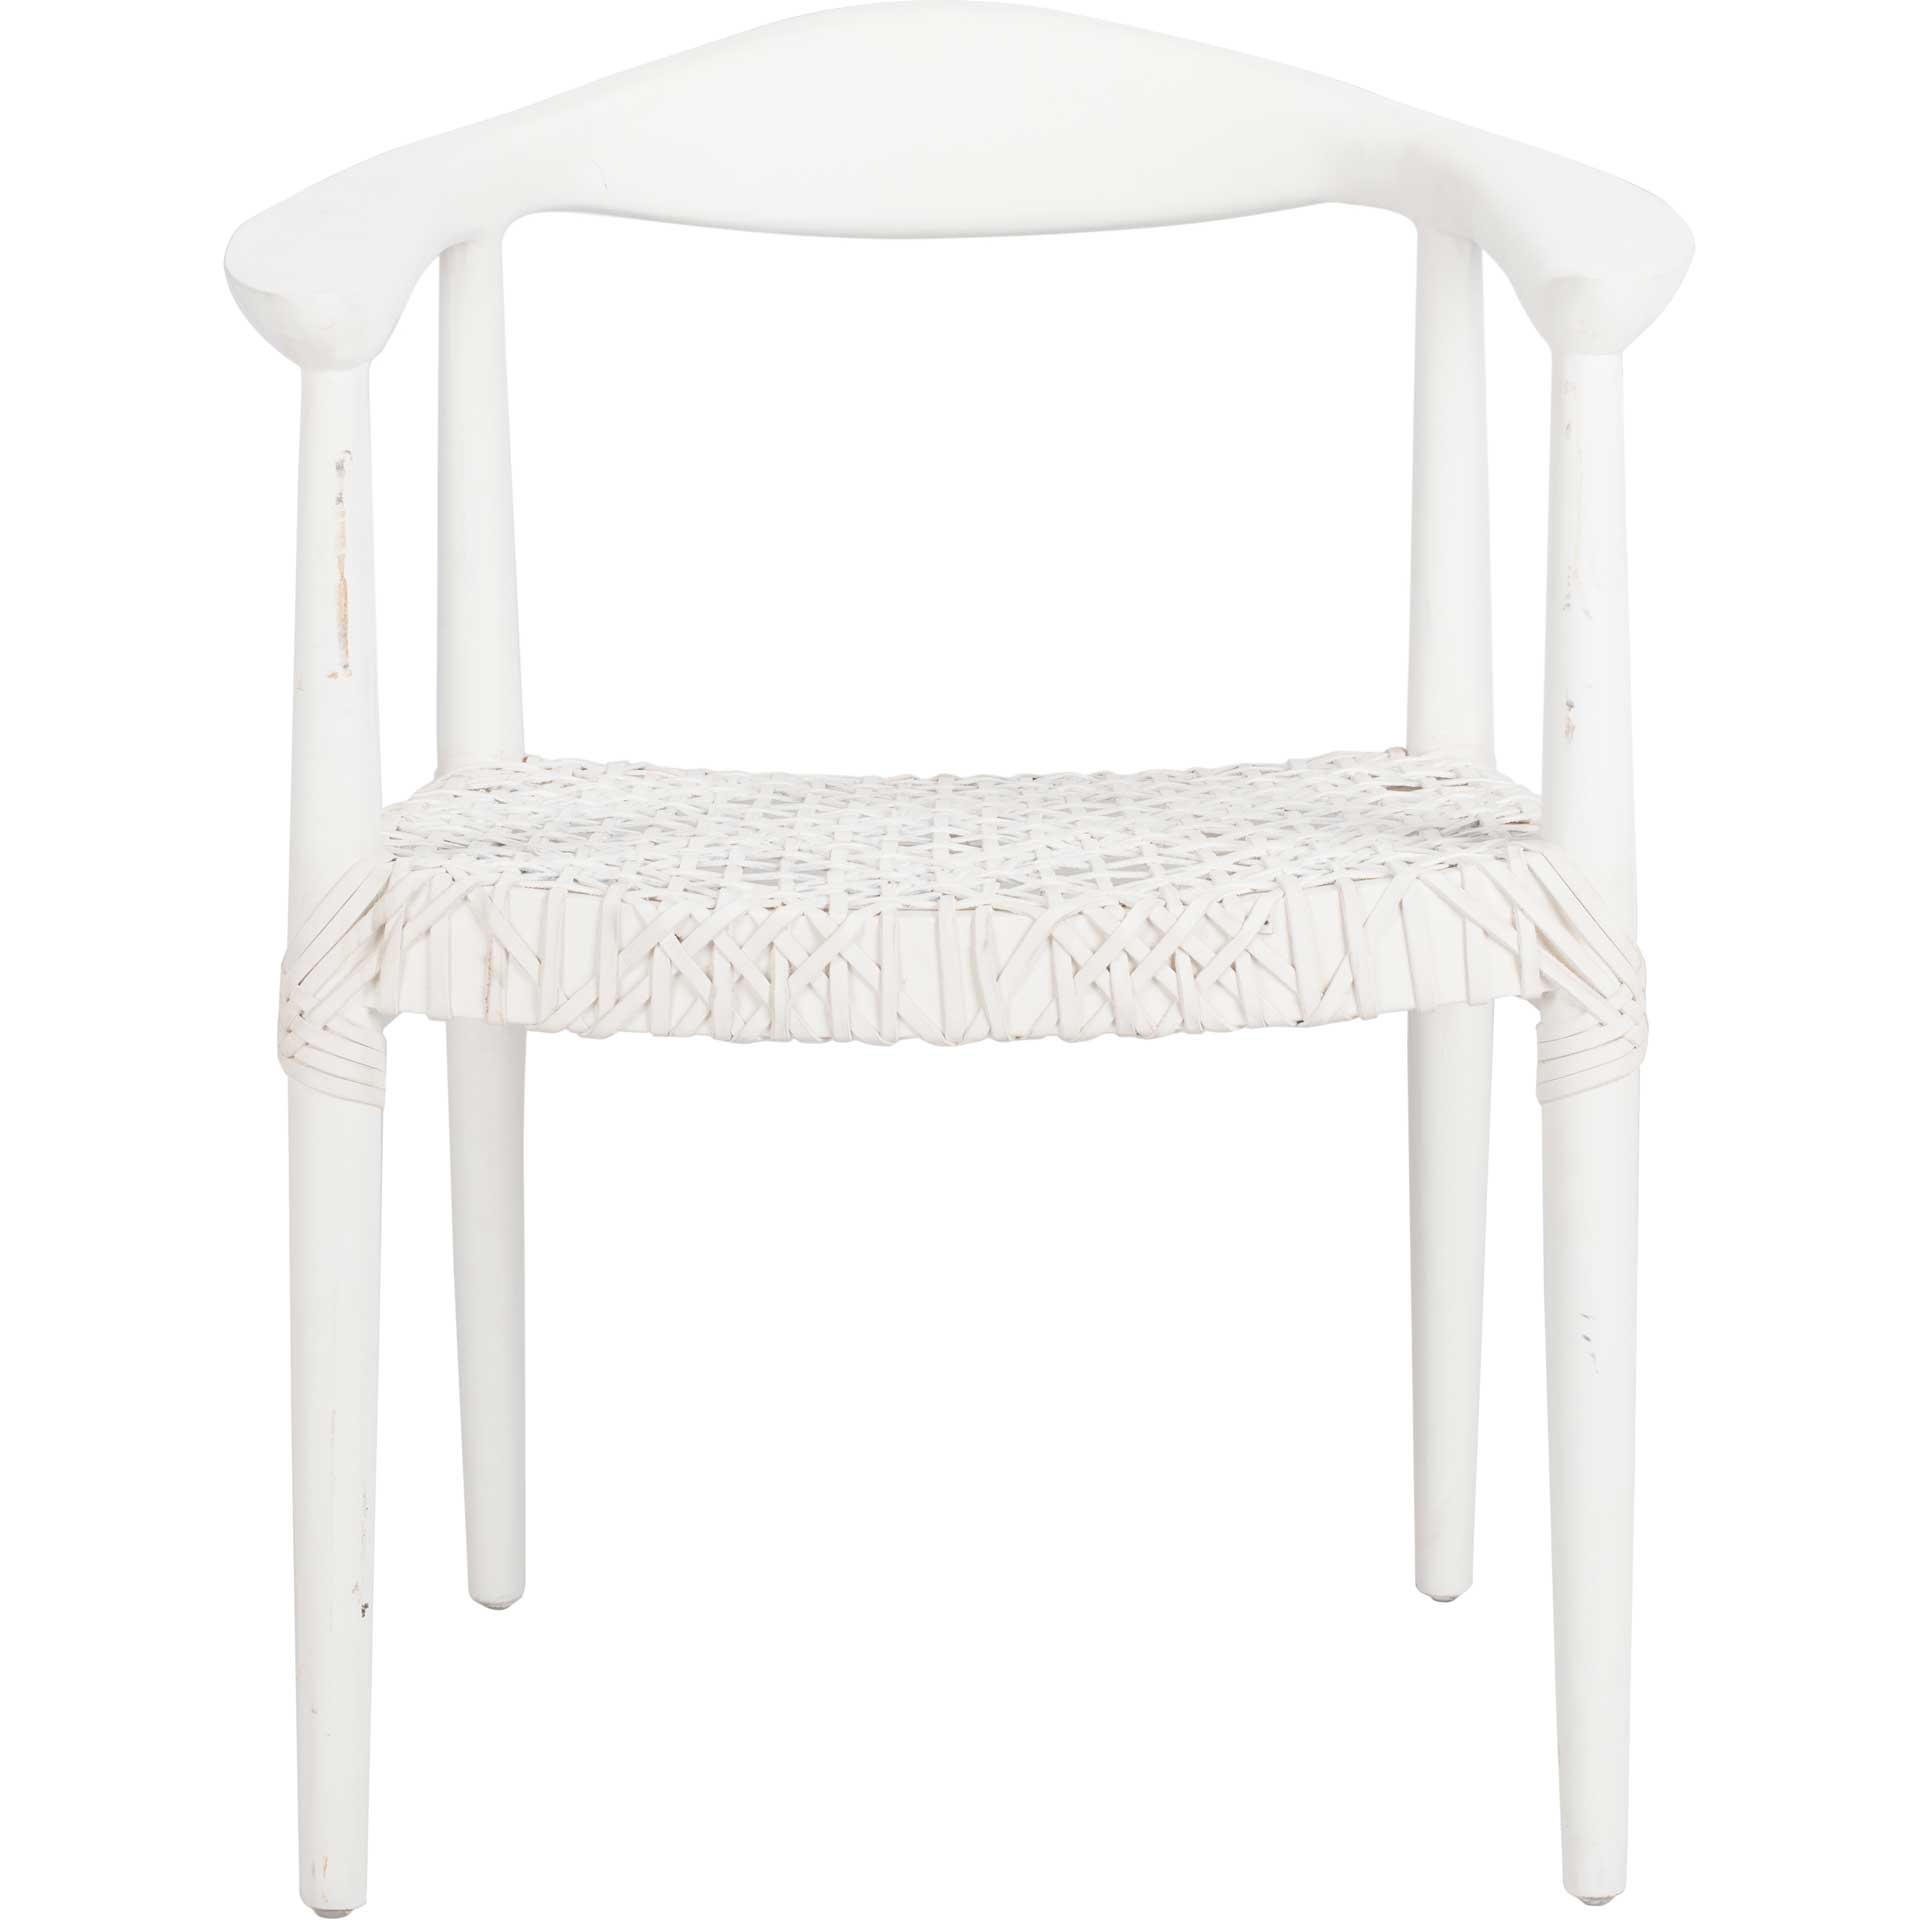 Justin Leather Woven Accent Chair White/Off-White